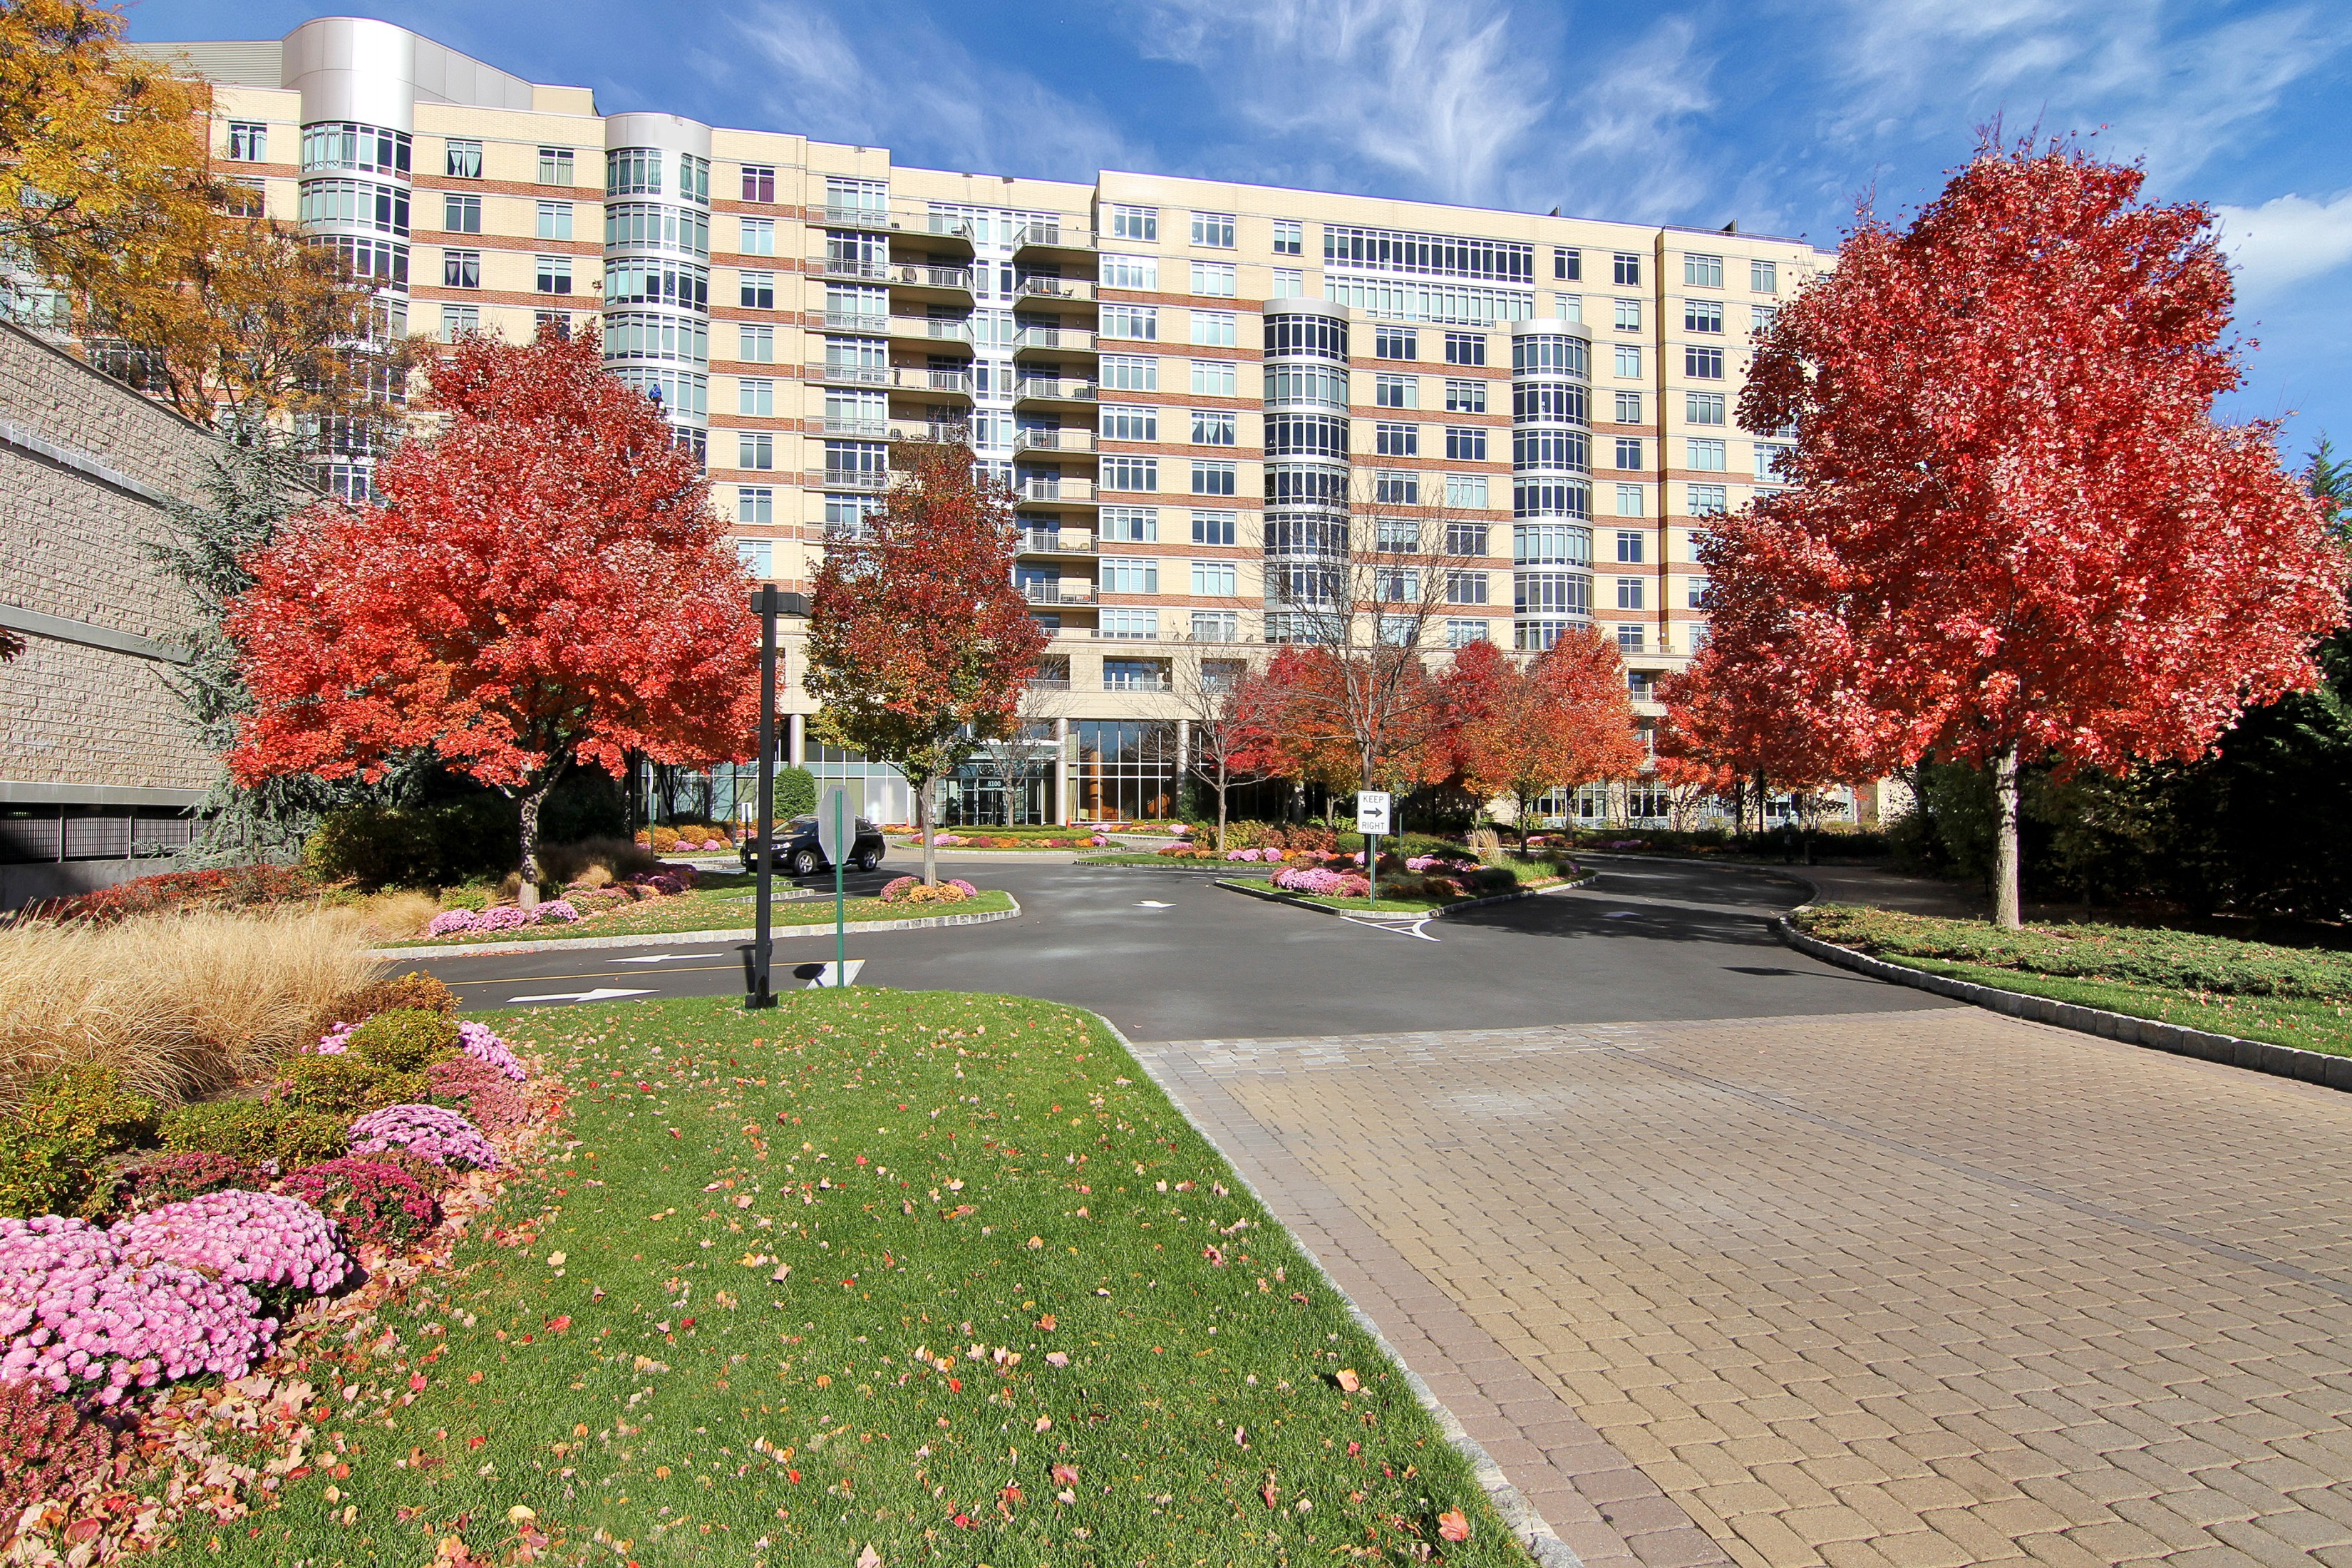 Appartement en copropriété pour l Vente à The Luxurious Watermark 8100 River Road #905 North Bergen, New Jersey 07047 États-Unis